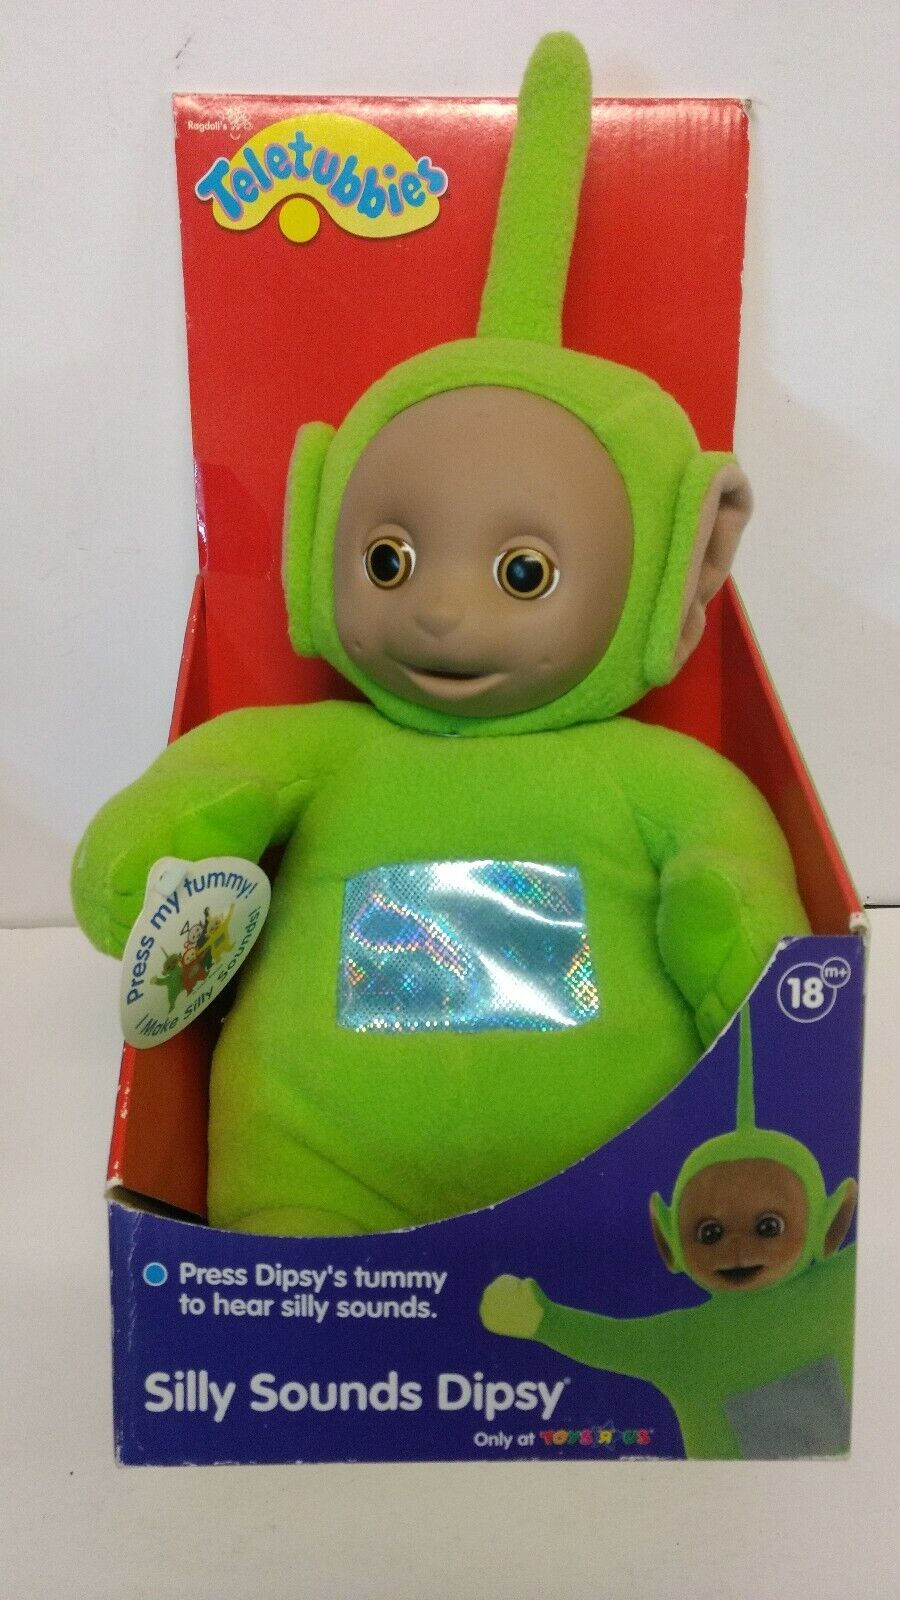 Vintage Teletubbies Silly Sounds Dipsy Talking Plush Toys R Us Exclusive NIB